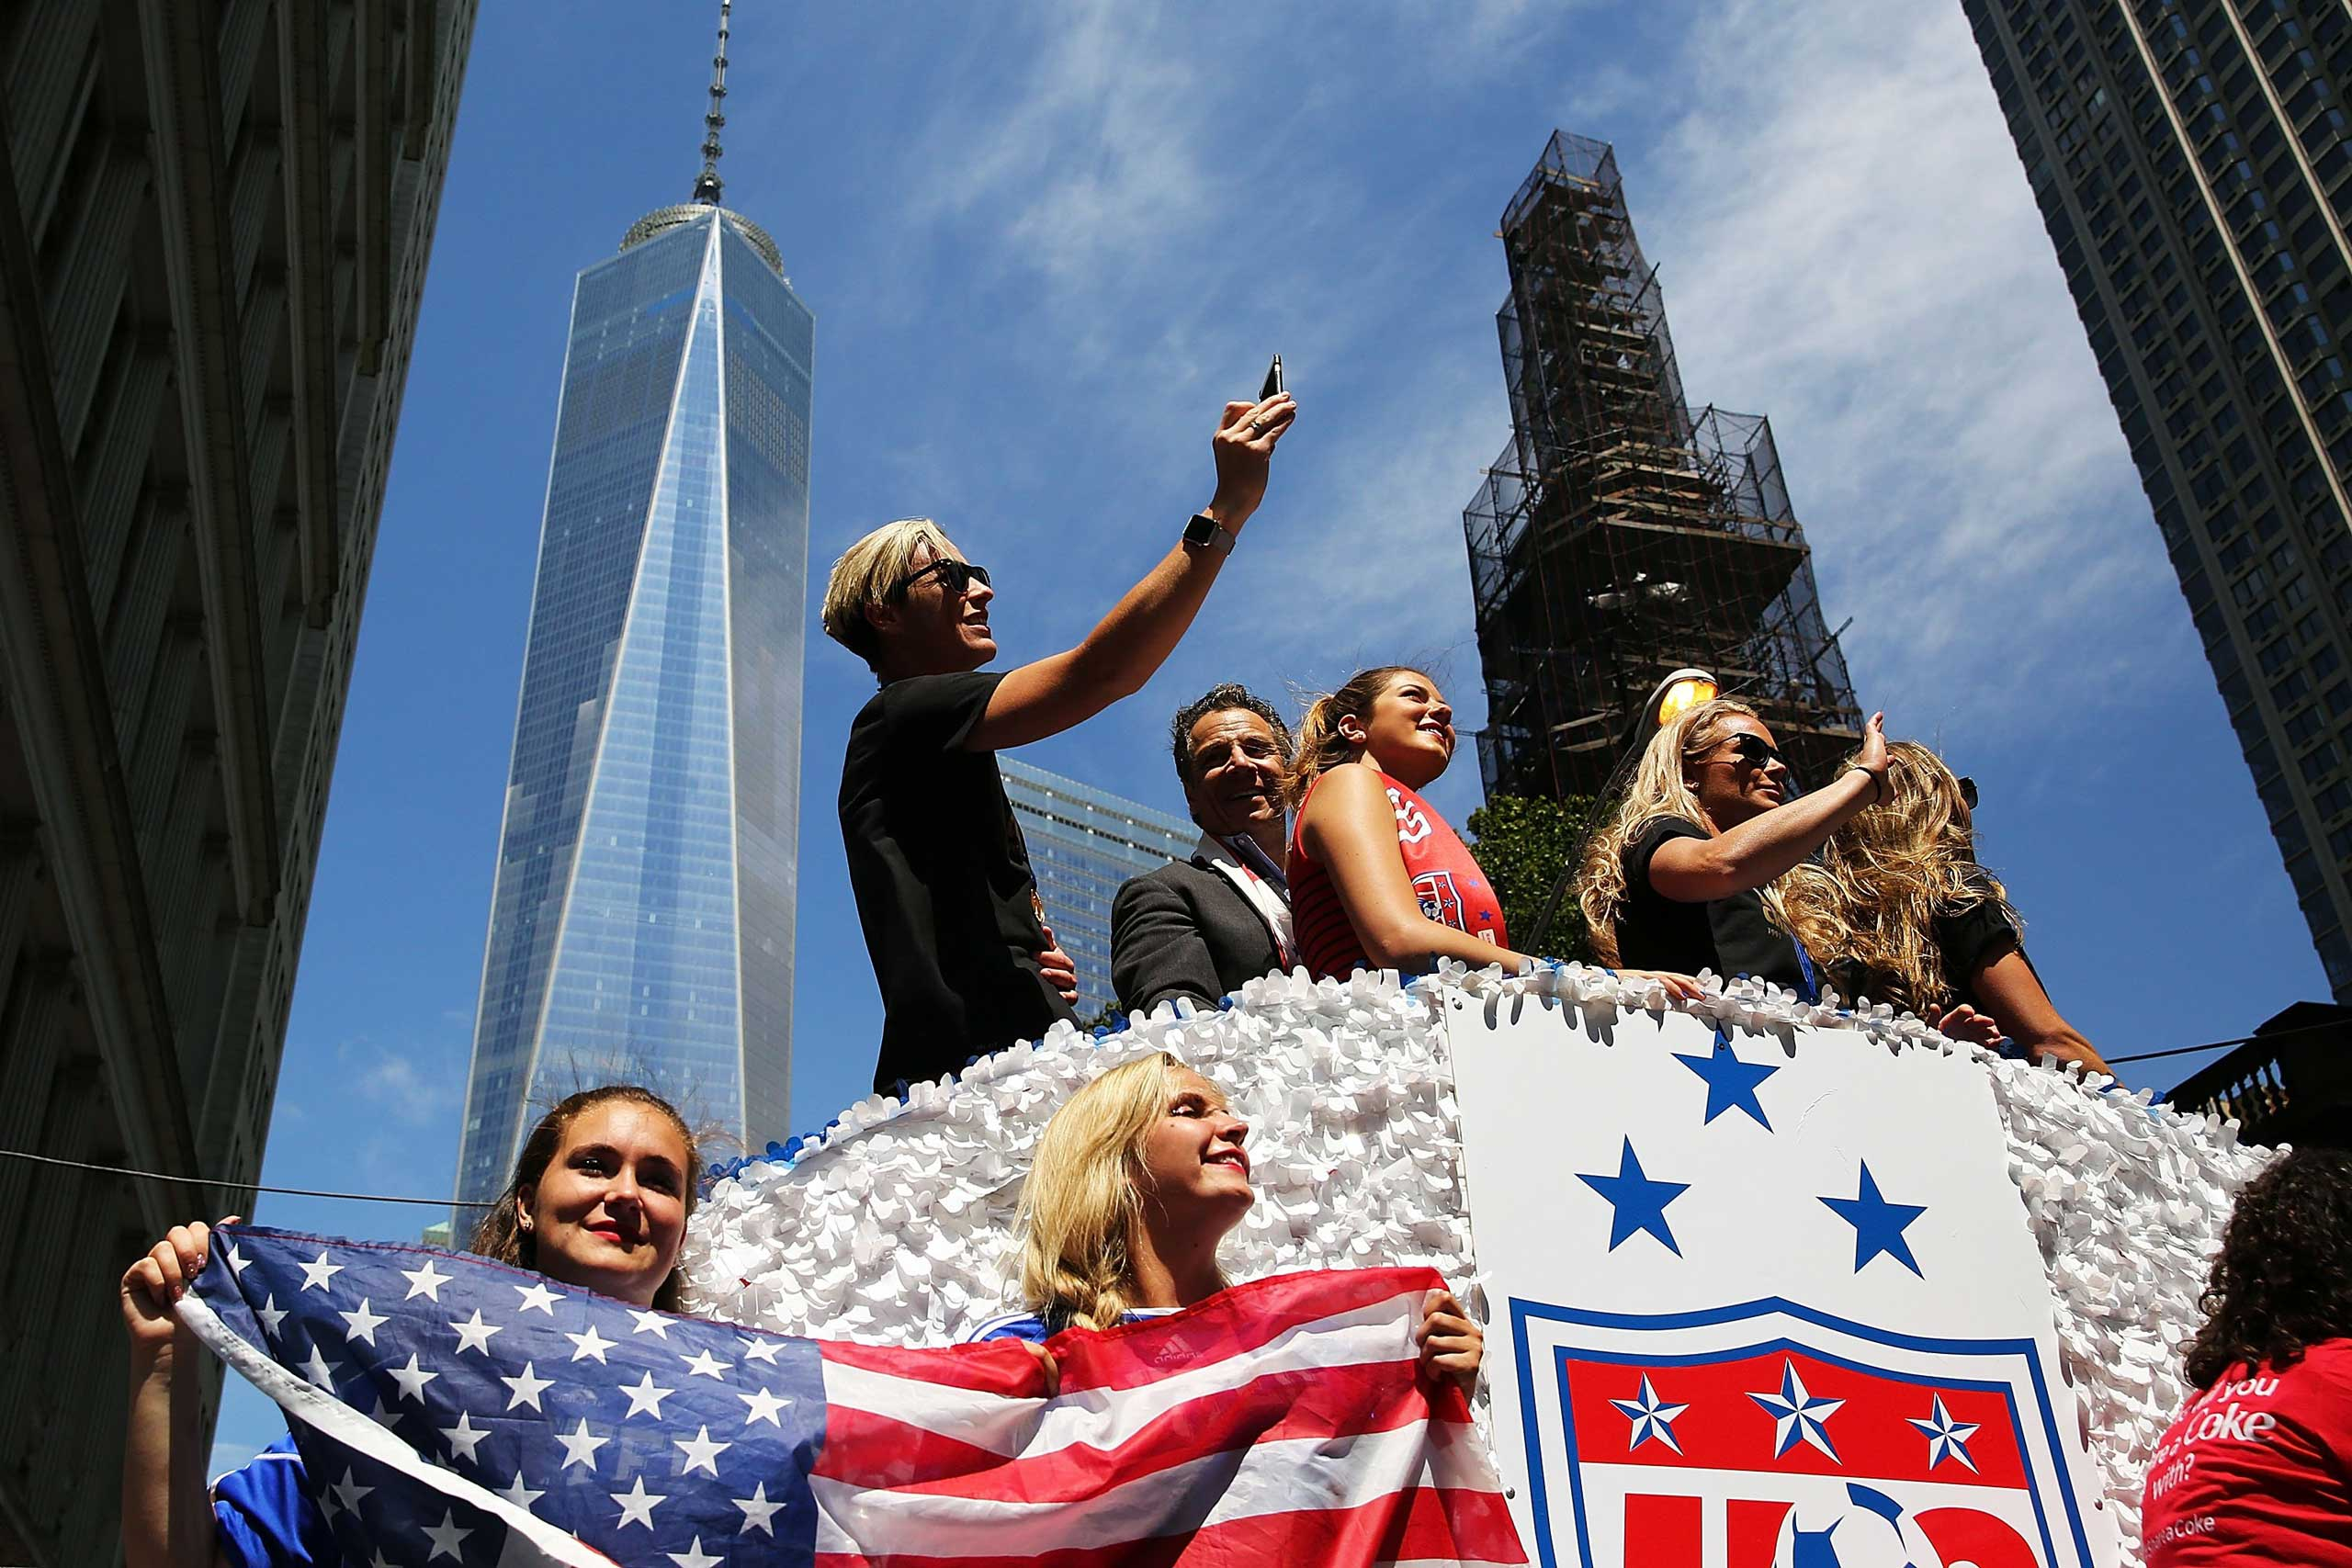 The World Cup-winning U.S. women's soccer team, including Abby Wambach (Top left), celebrates along with New York Governor Andrew Cuomo (center), as they make their way up the The Canyon of Heroes during a  ticker-tape parade along Broadway in New York City on July 10, 2015.